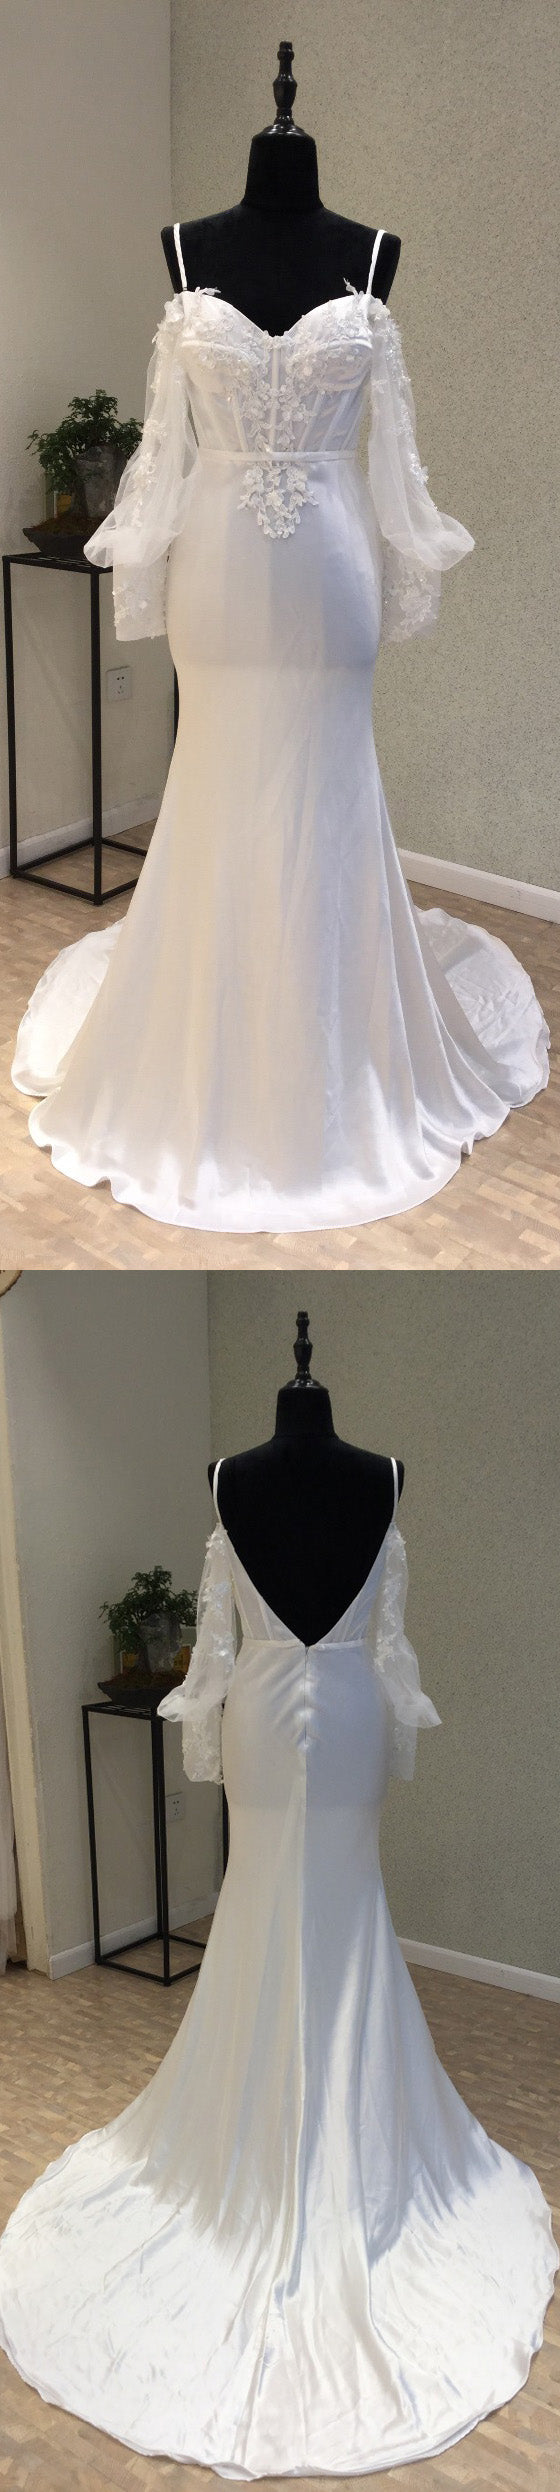 Long Sleeves Spaghetti Strap Mermaid Sexy Backless Long Wedding Dresses, WG1232